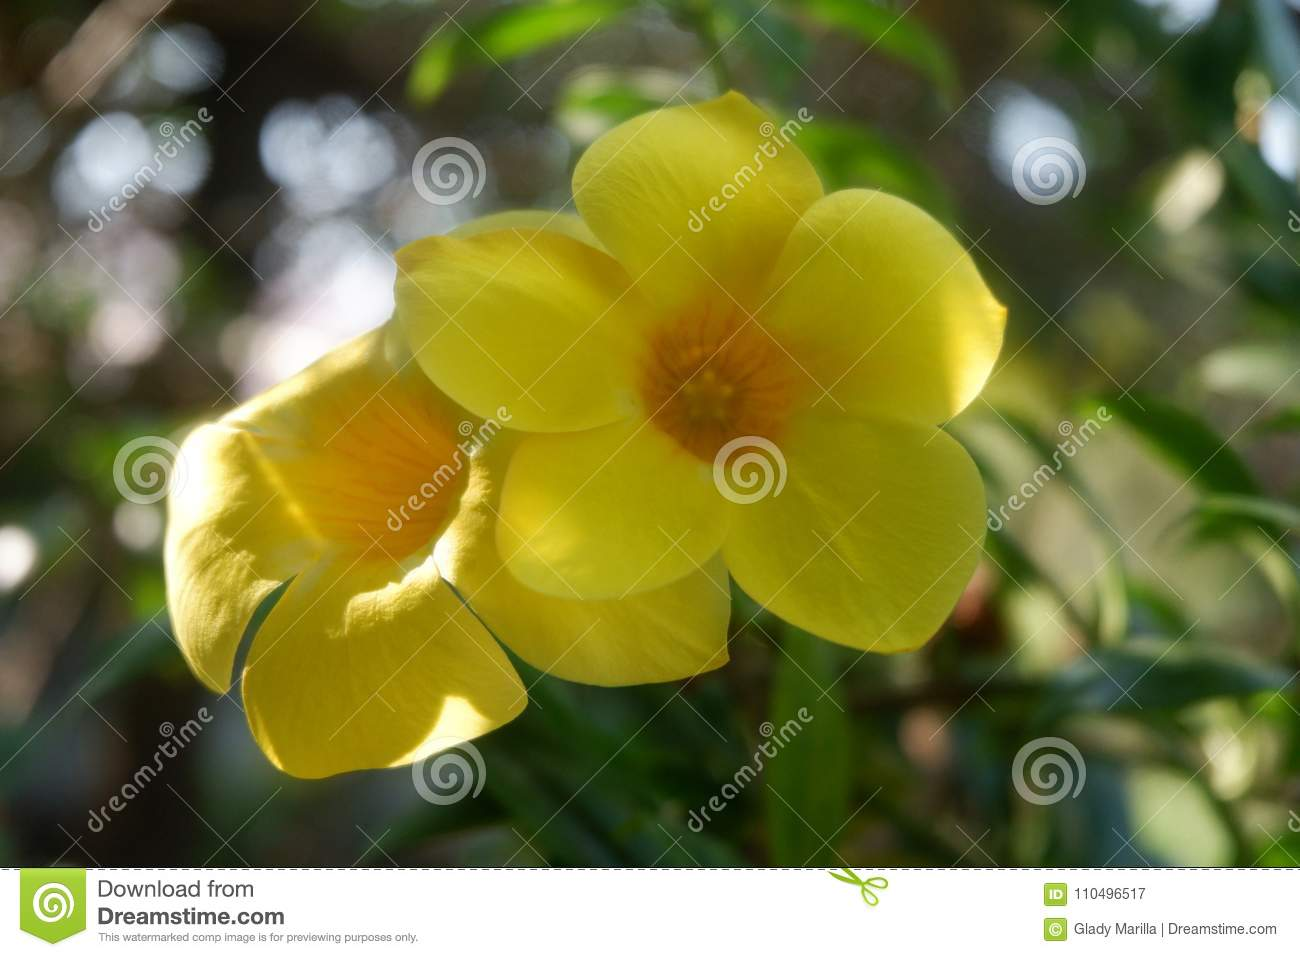 Yellow bell flowers stock image image of flowers bell 110496517 yellow bell flowers mightylinksfo